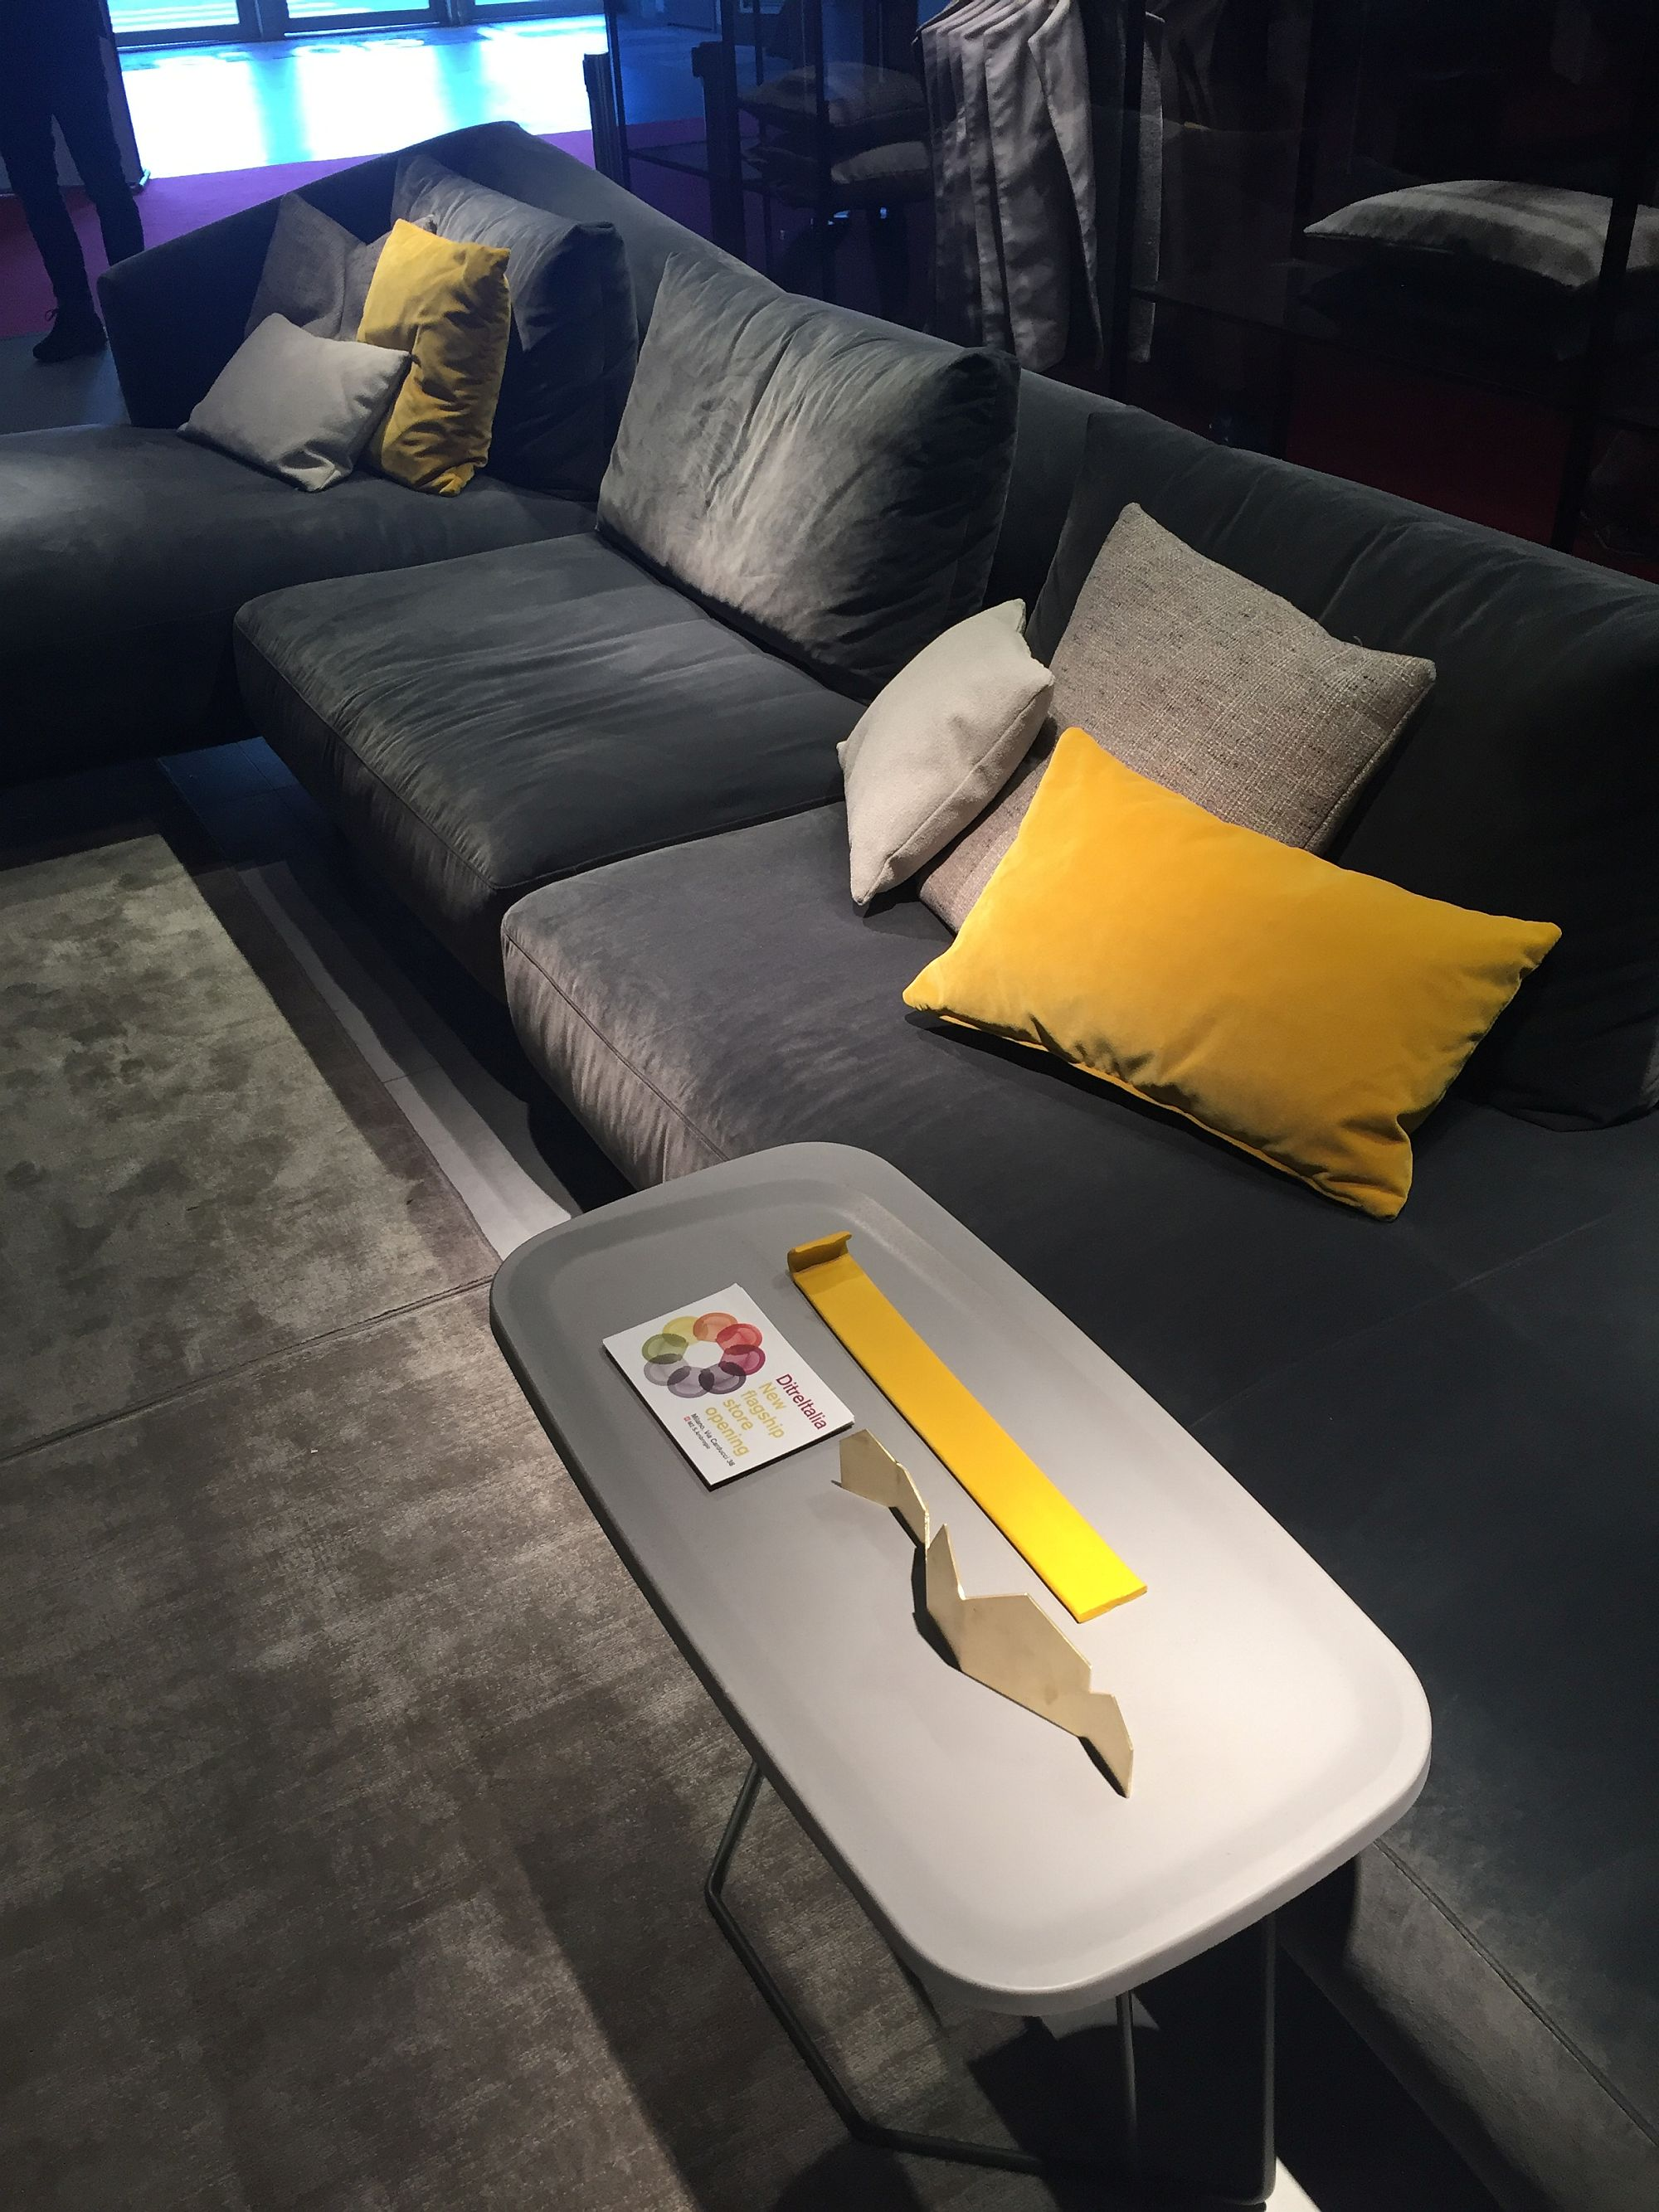 A dash of yellow using accent pillows brings color to the gray living room couch